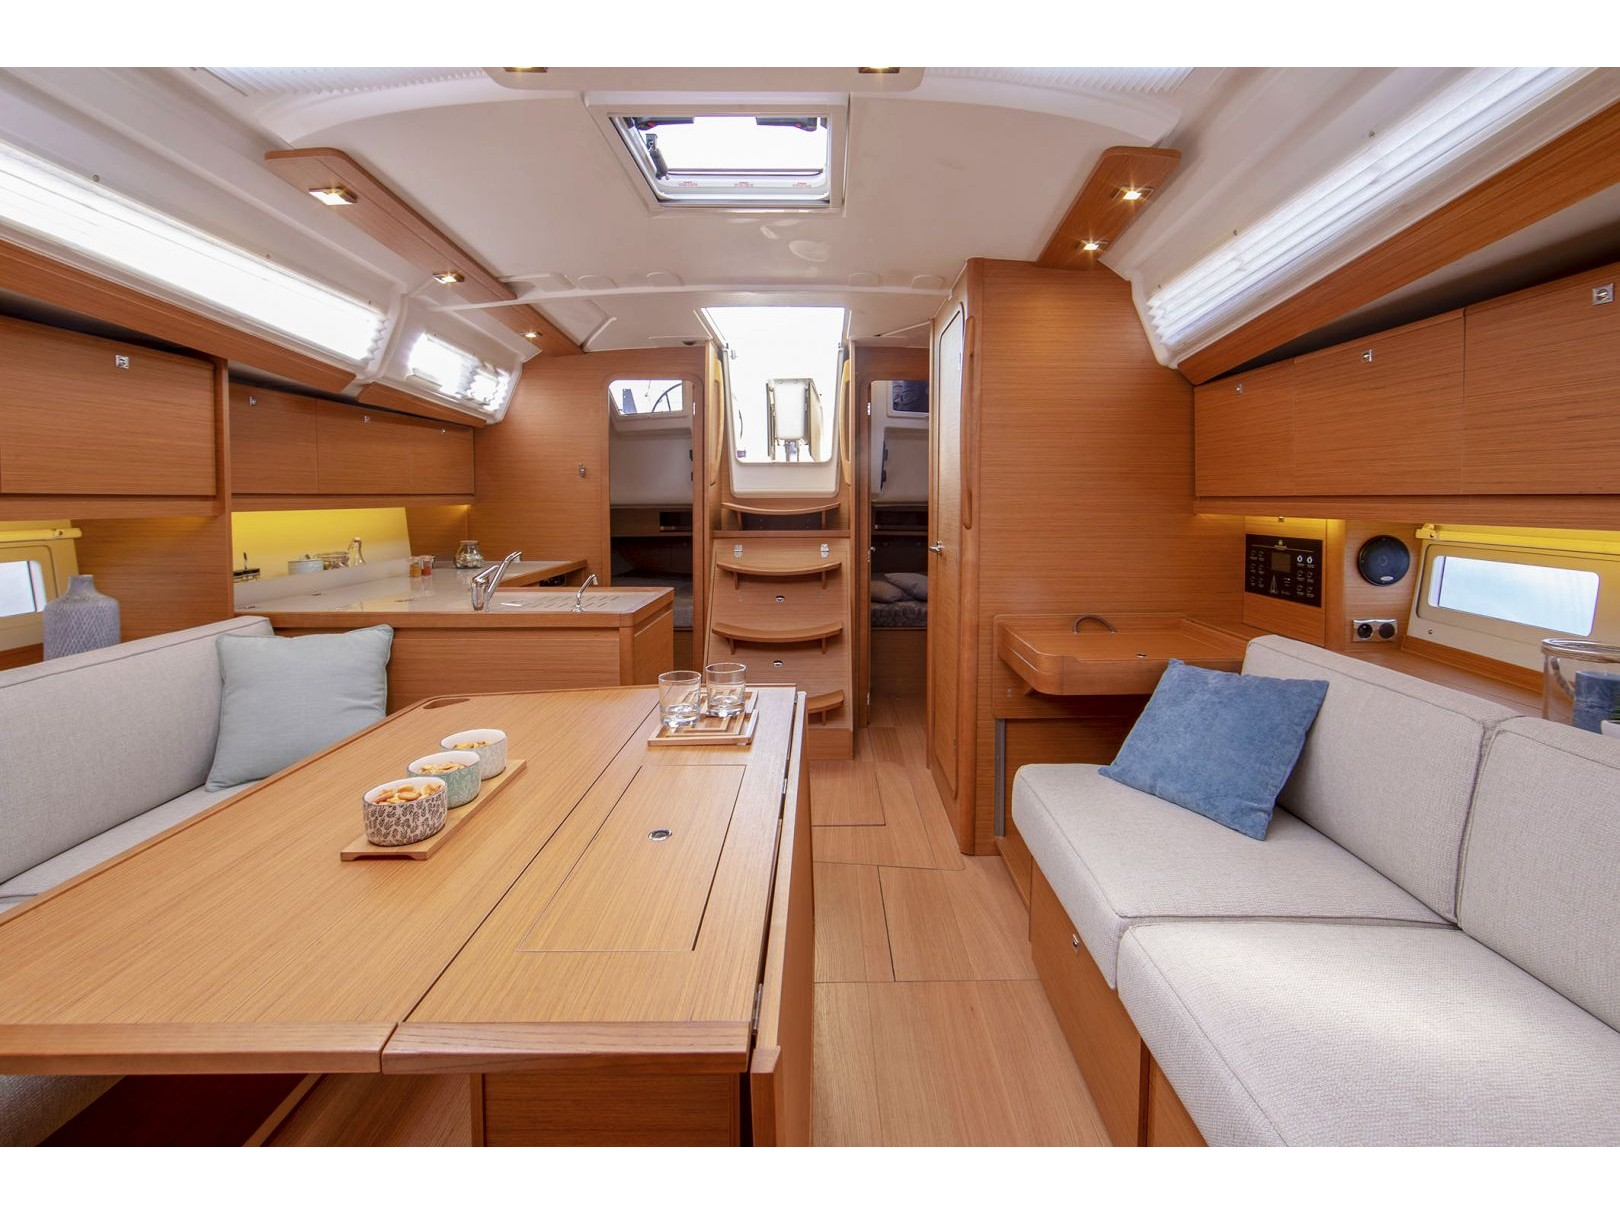 Dufour 390 Grand Large (Cordelia) Interior image - 1